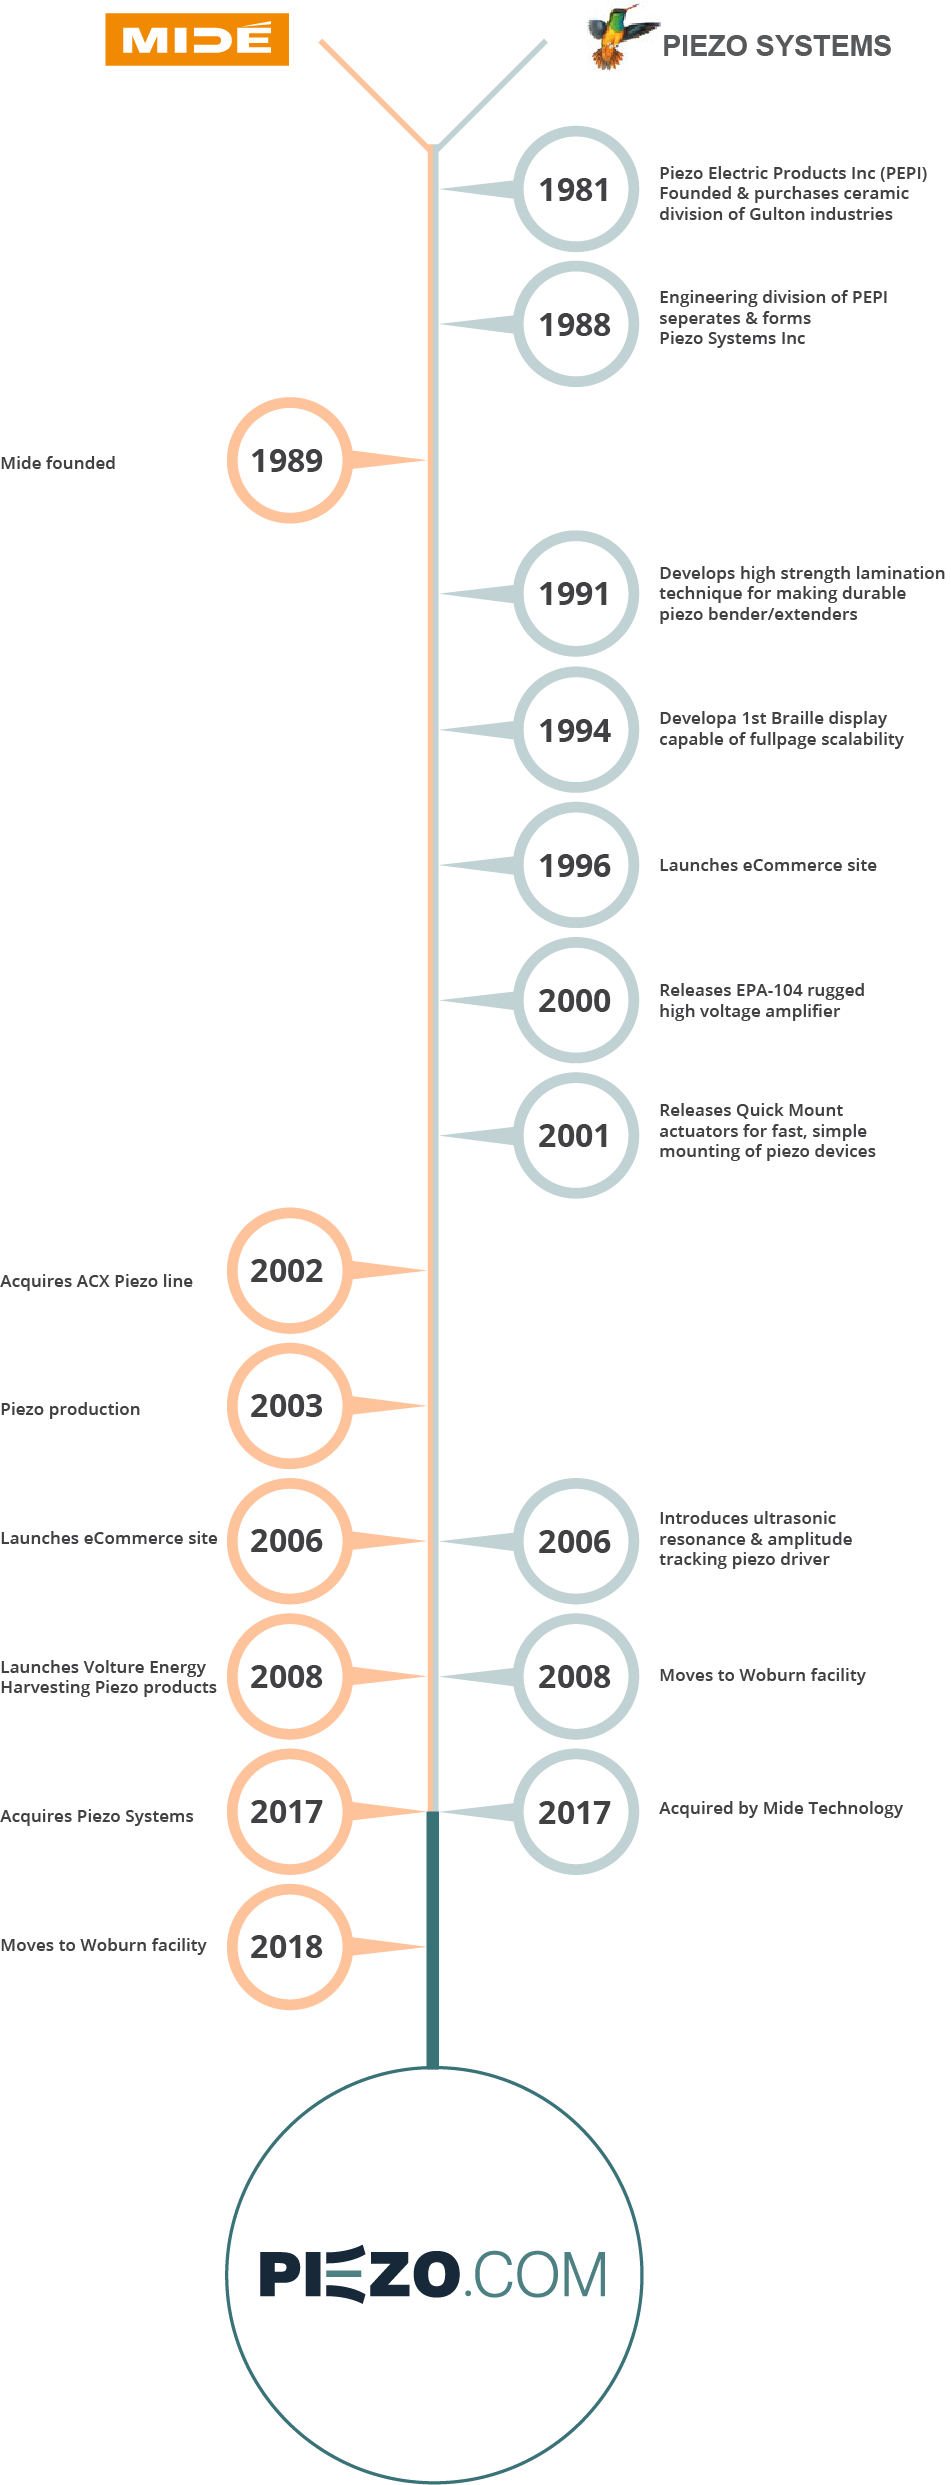 mide and piezo systems timeline